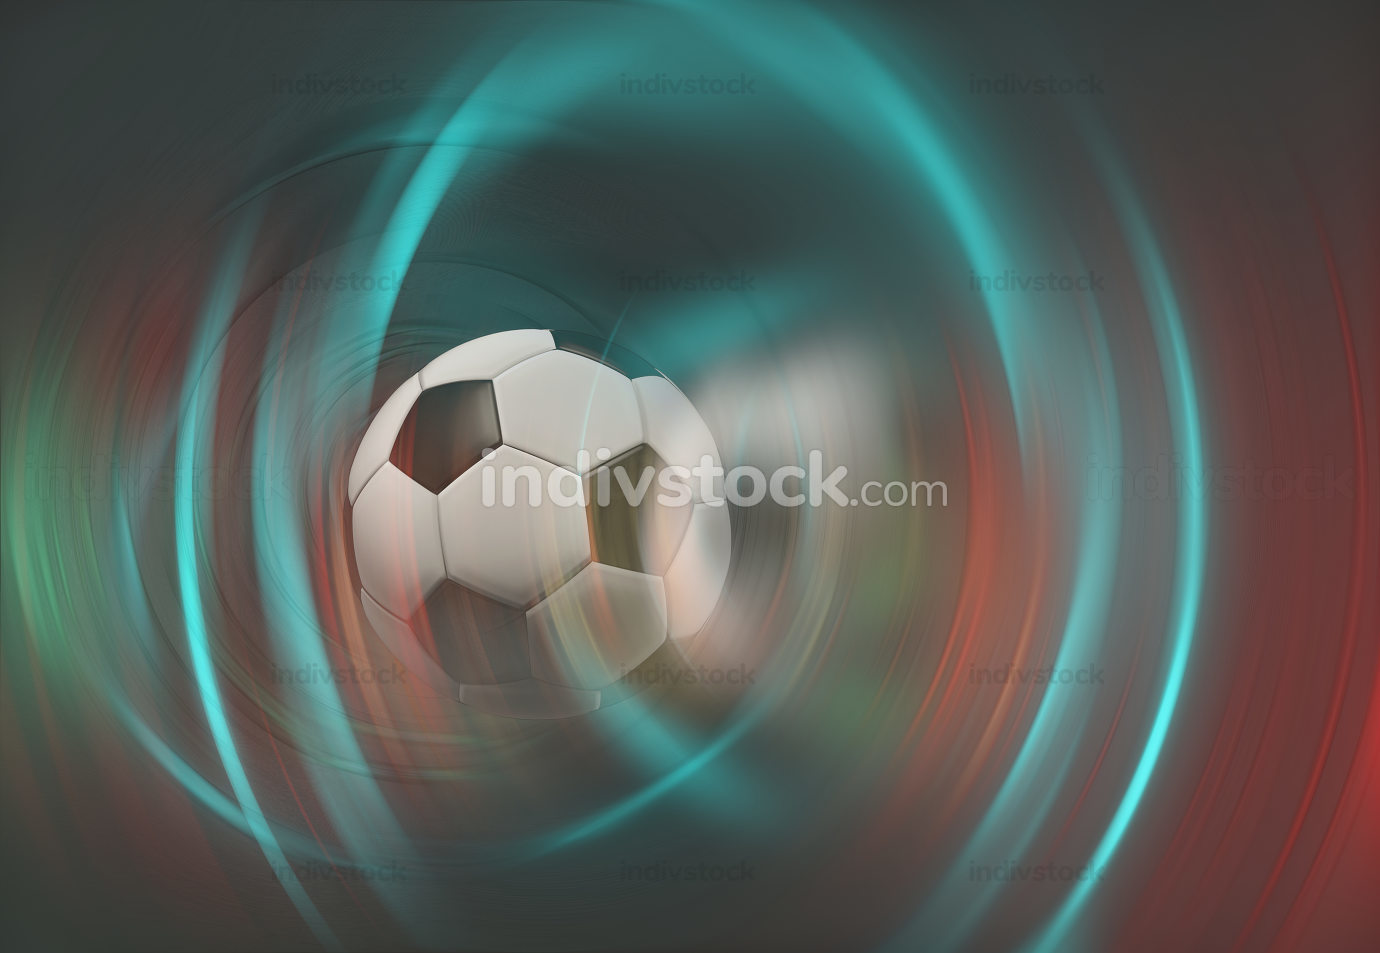 soccer ball creative abstract background graphic 3d-illustration